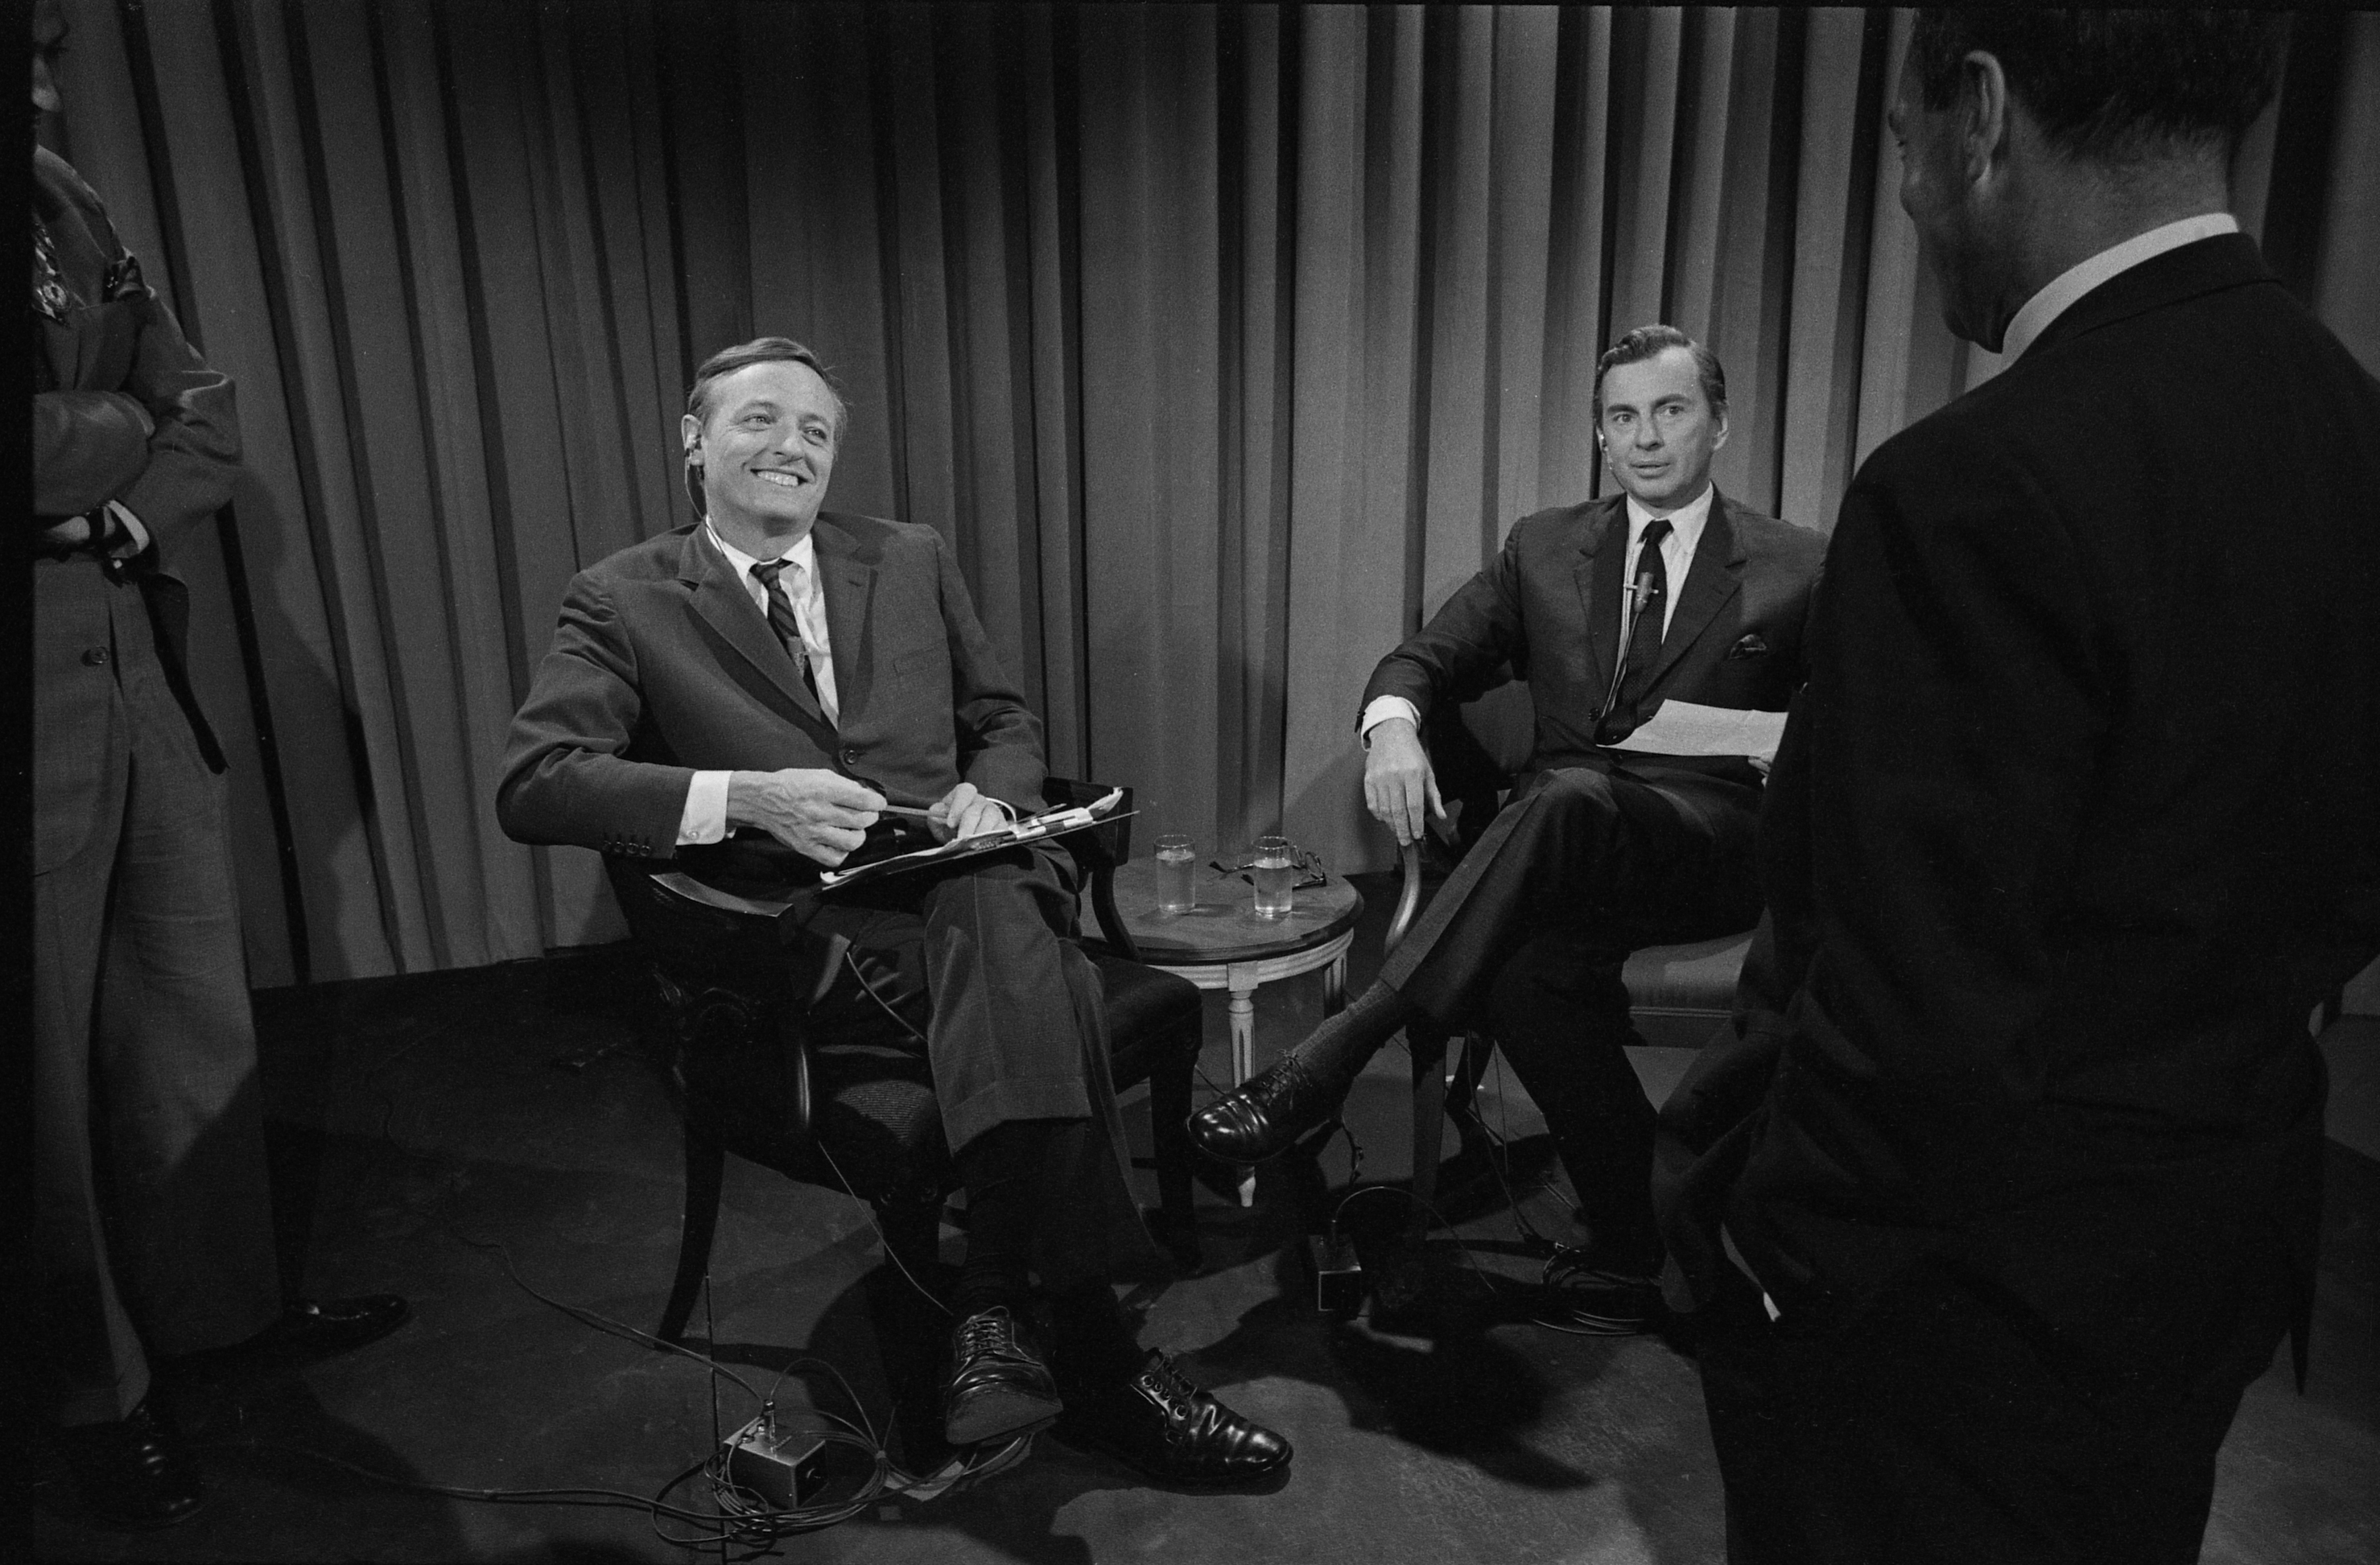 Buckley vs. Vidal, ABC News political debate in 1968.